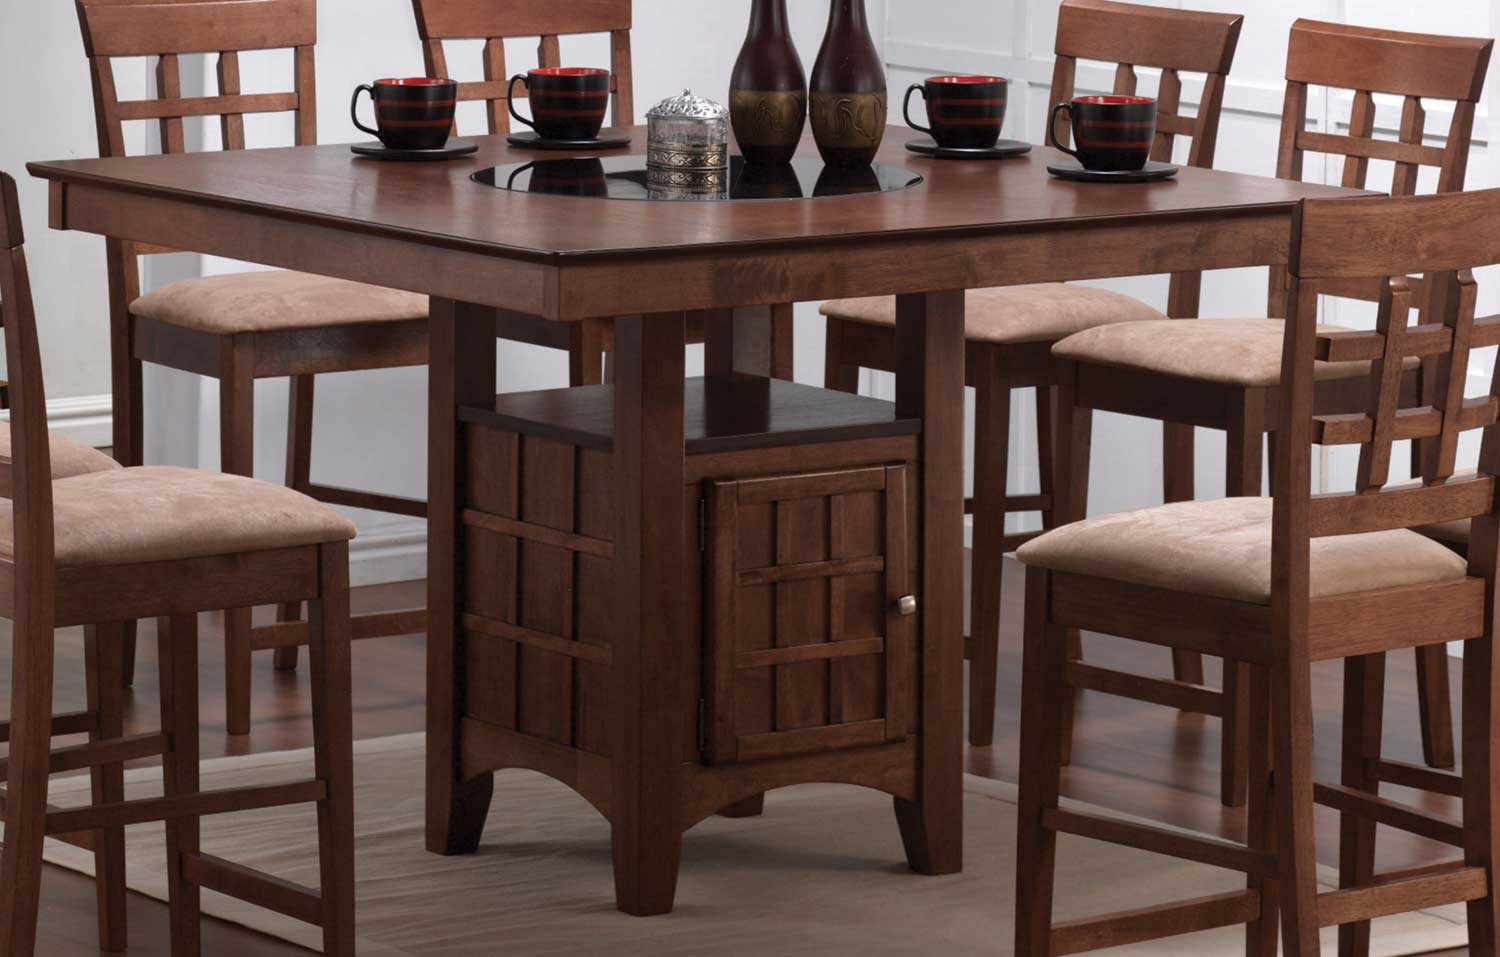 Coaster Mix And Match Counter Height Dining Table With Storage Pedestal Base